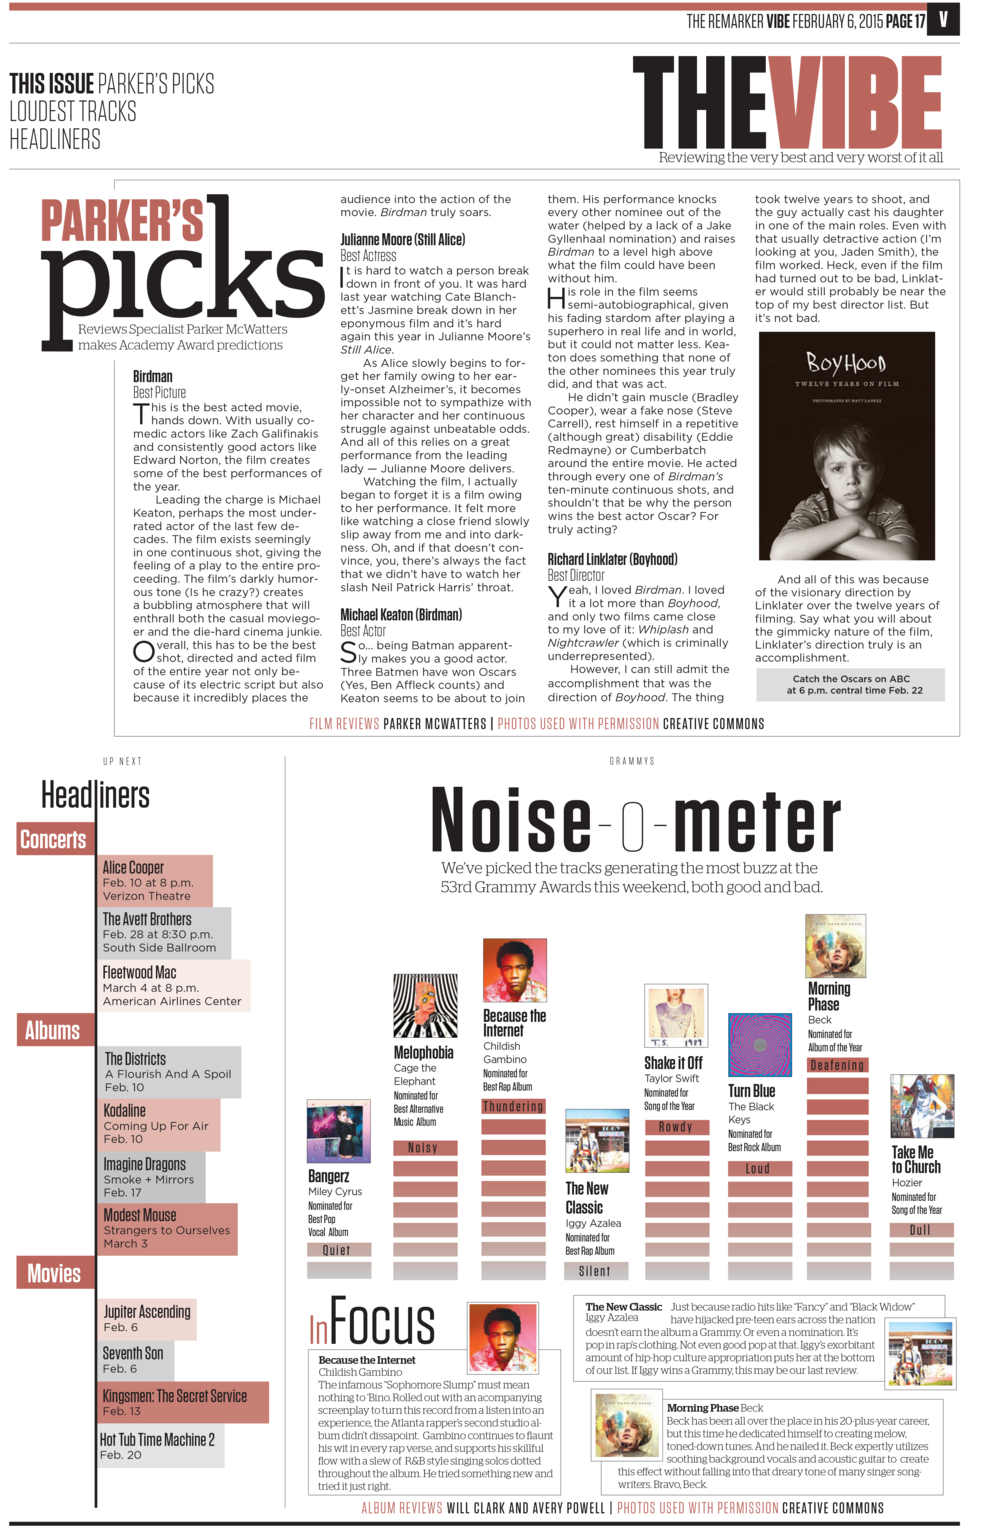 """I came up with the """"Noise-o-meter,"""" which received praise form the community and presented our take on the nominations for the upcoming Grammy Awards.   Part of my portfolio that received 2nd place in CSPA Gold Circle Awards for """"Single Page Design Portfolio."""""""